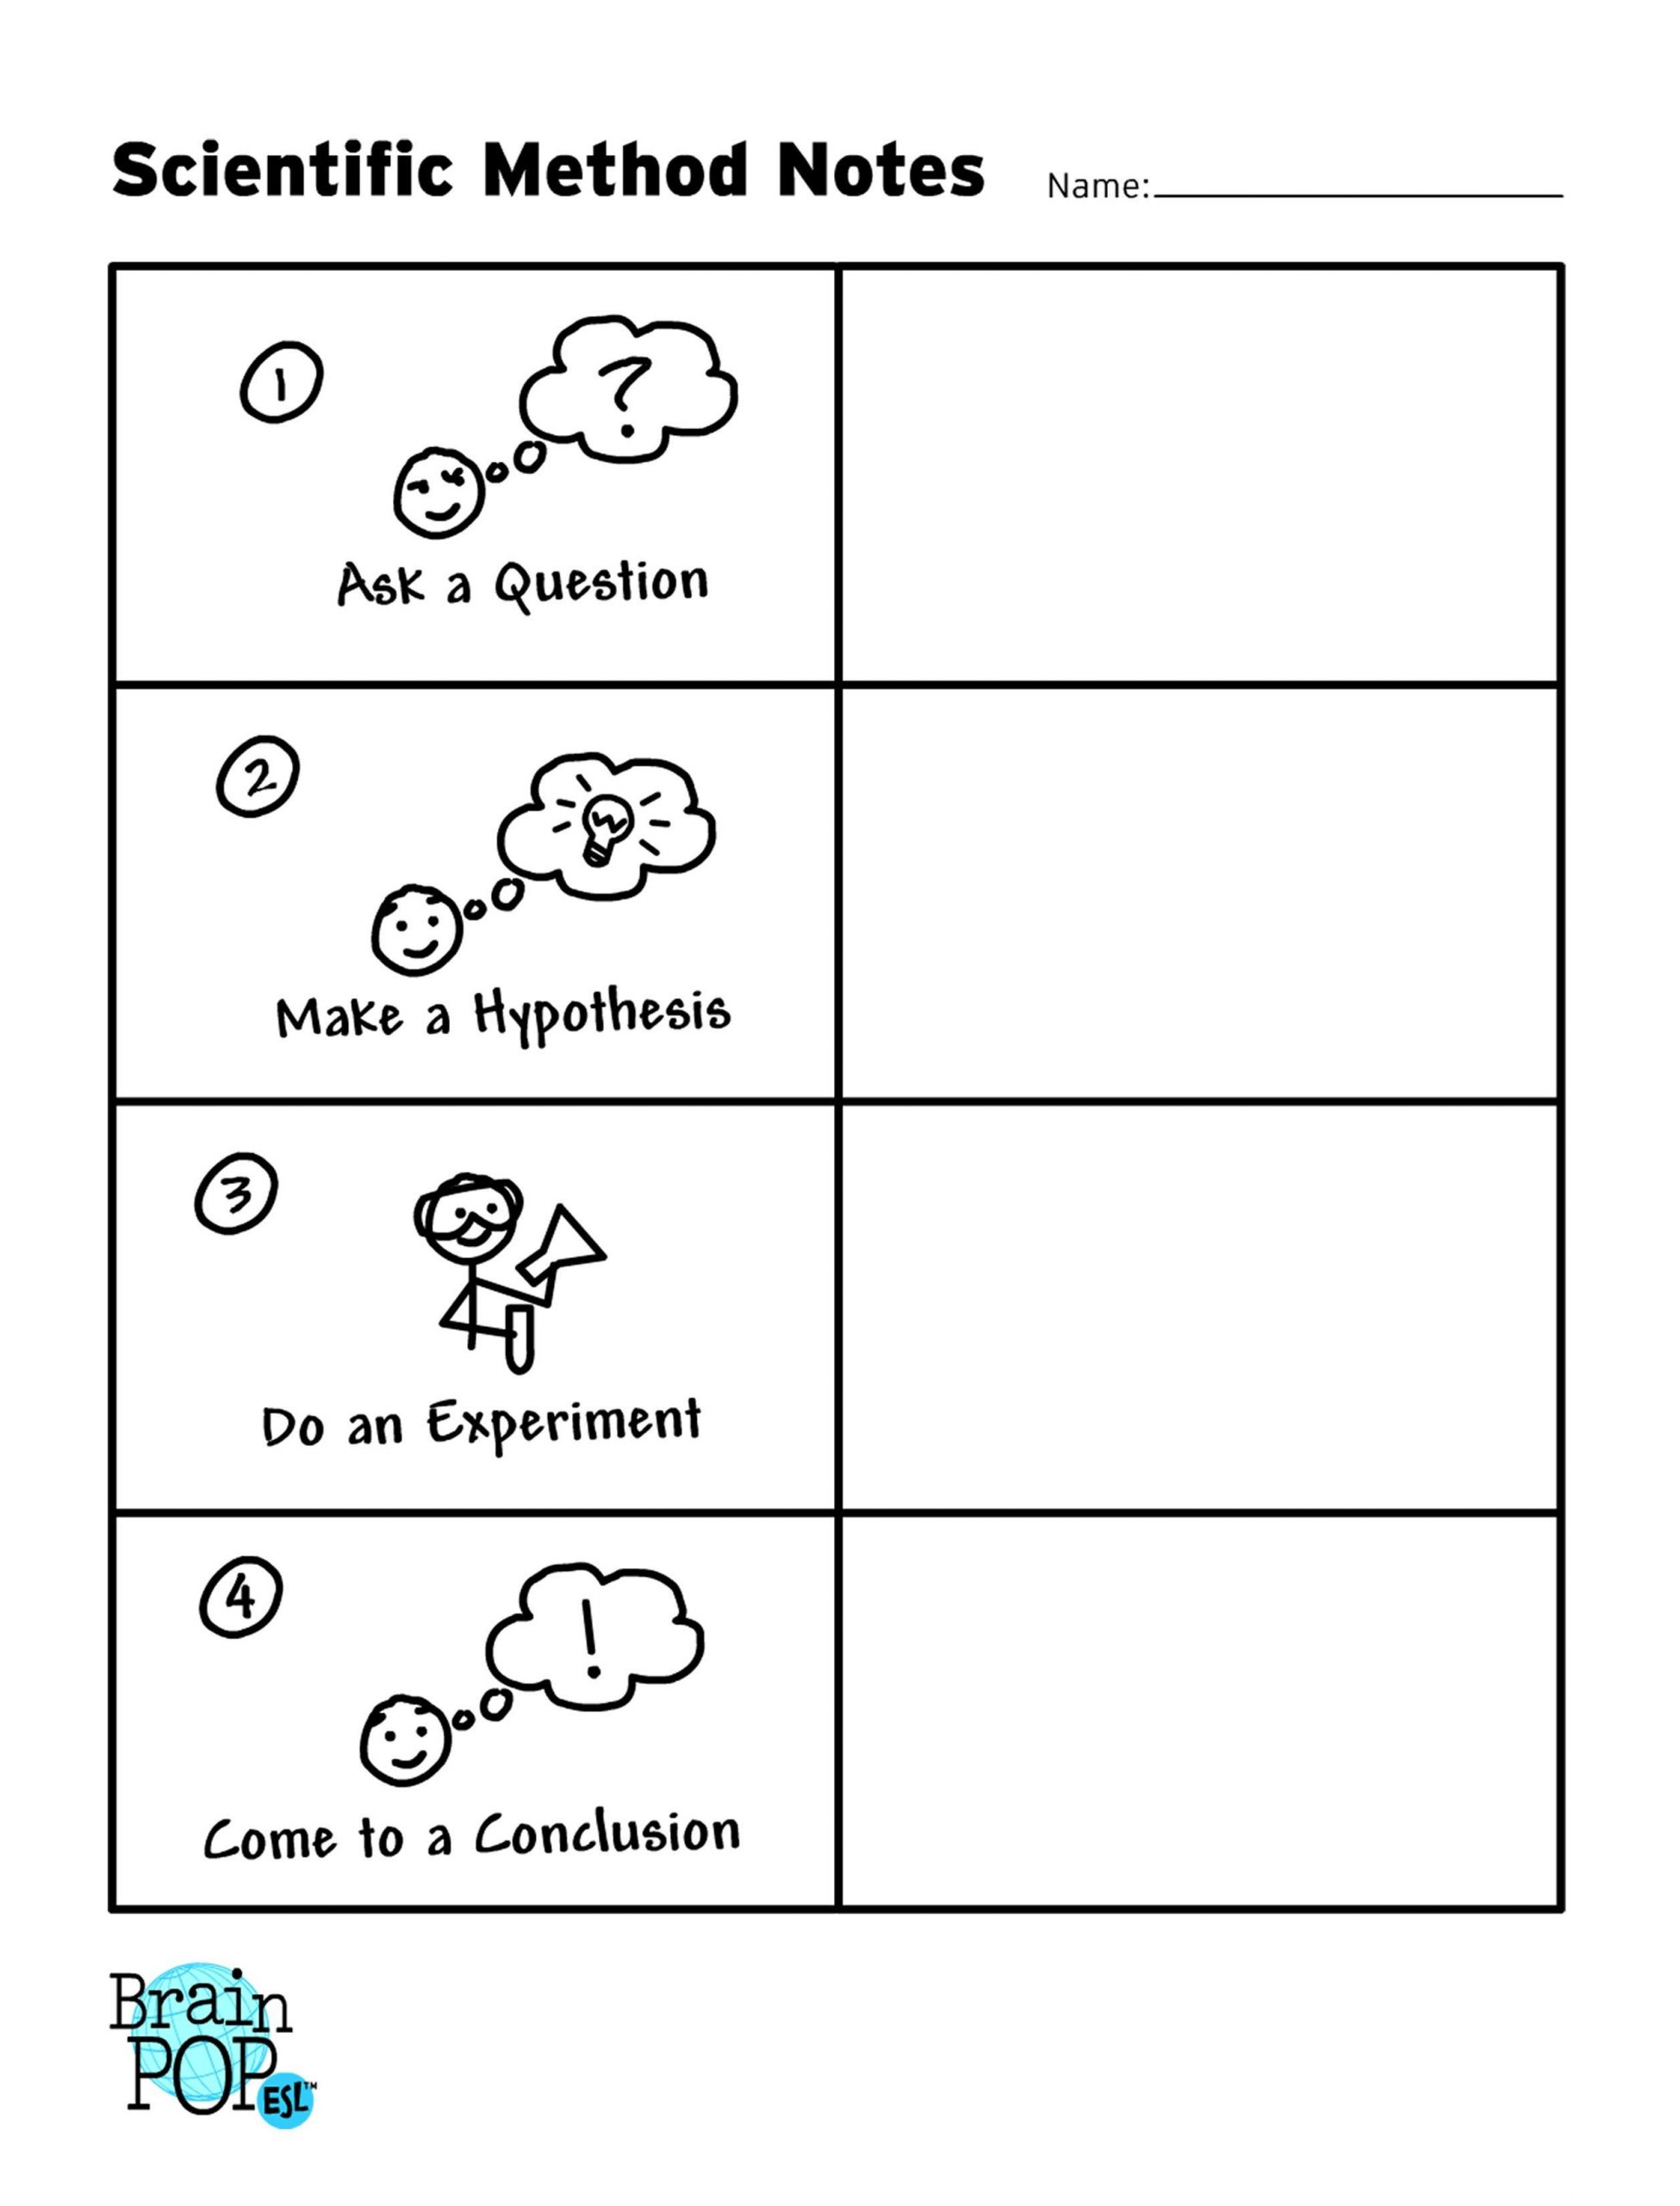 30 Scientific Method Worksheet Answers